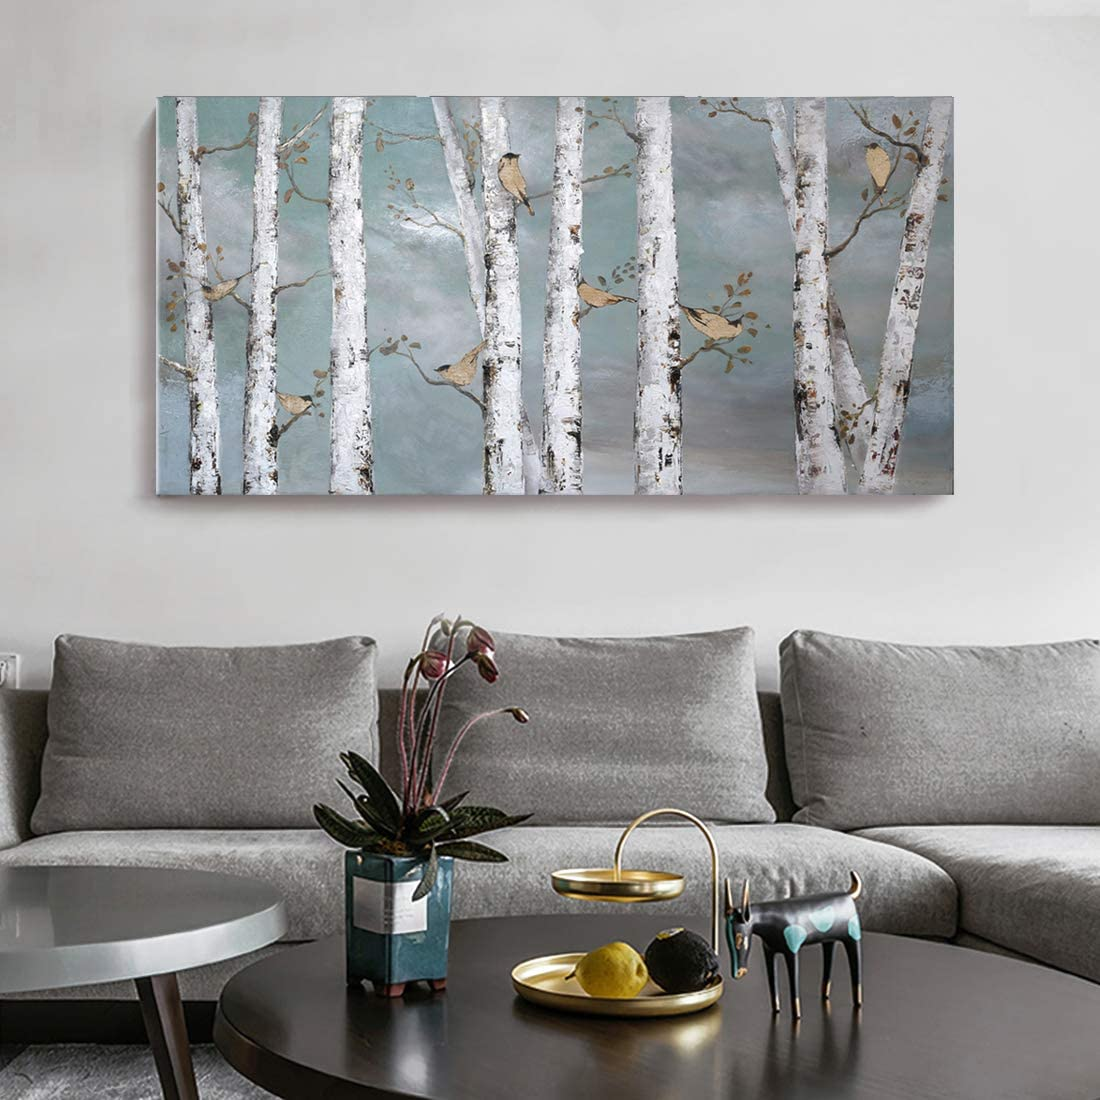 Large Tree Wall Art Hand-Painted Landscape Forest Oil Painting Gallery Wrapped Framed Canvas Bird Birch Artwork 'White Birch at Night' for Living Room Bedroom Office Décor Teal White Gold 48x24inch